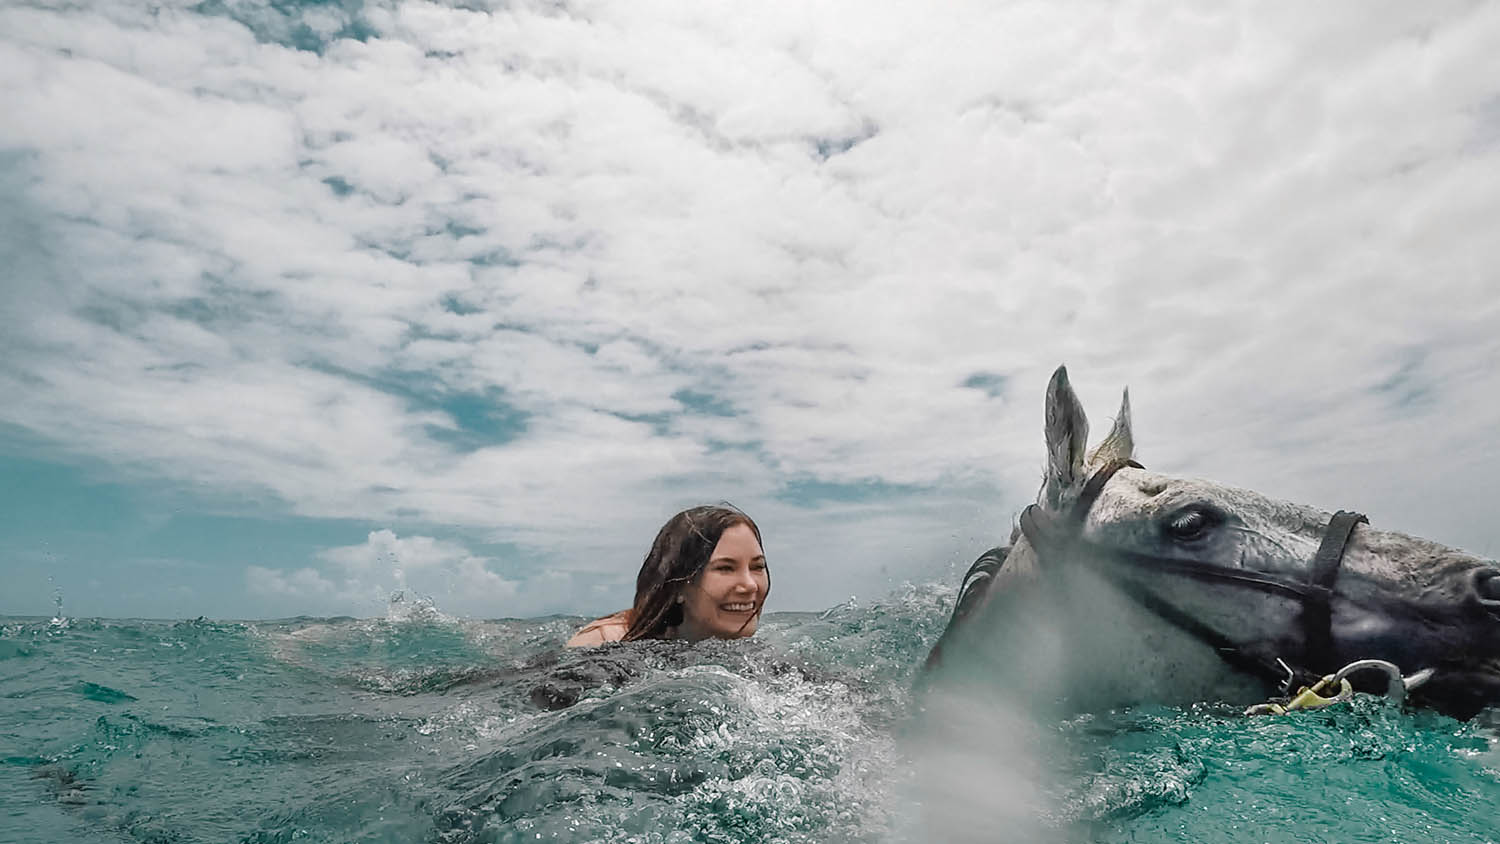 Adaras swimming with horses in Jamaica